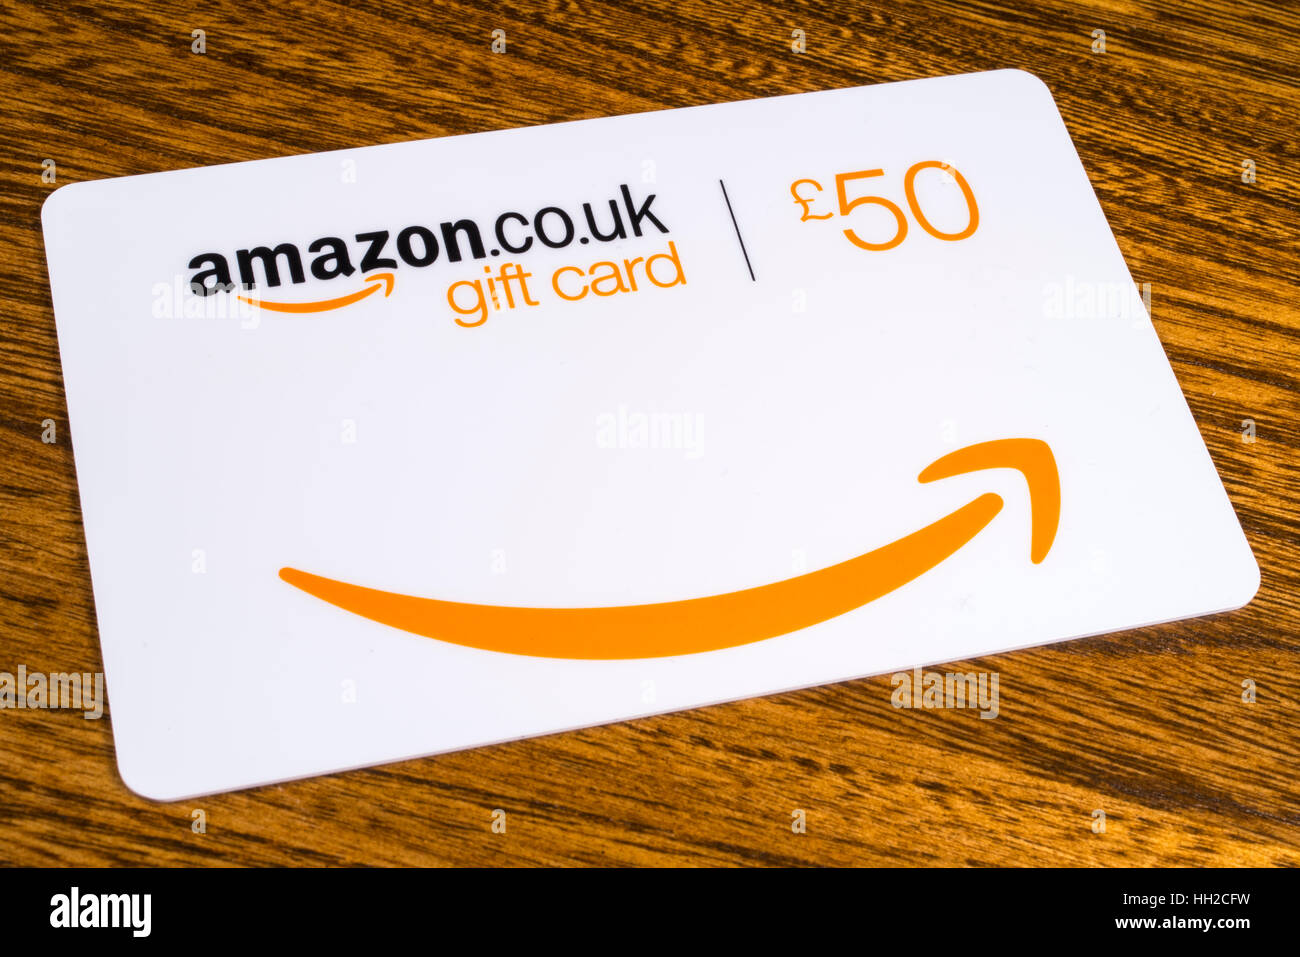 Amazon Gift Card Stock Photos Amazon Gift Card Stock Images Alamy